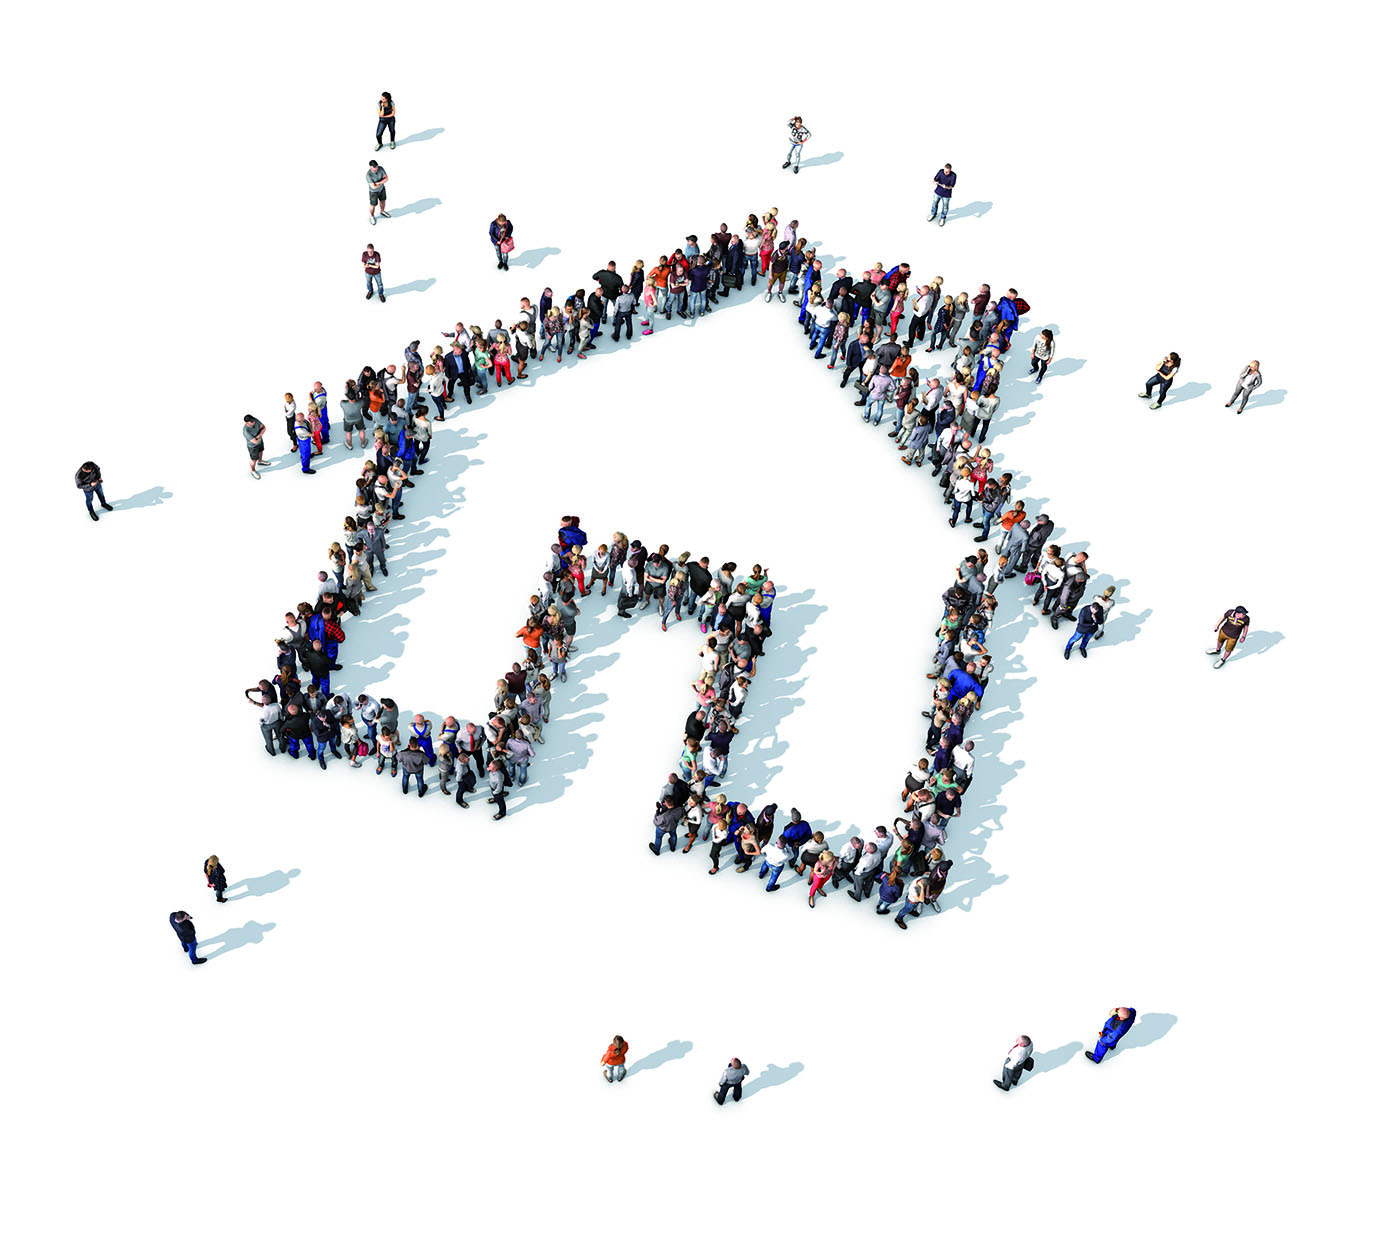 Large collection of people grouped together to form a house icon